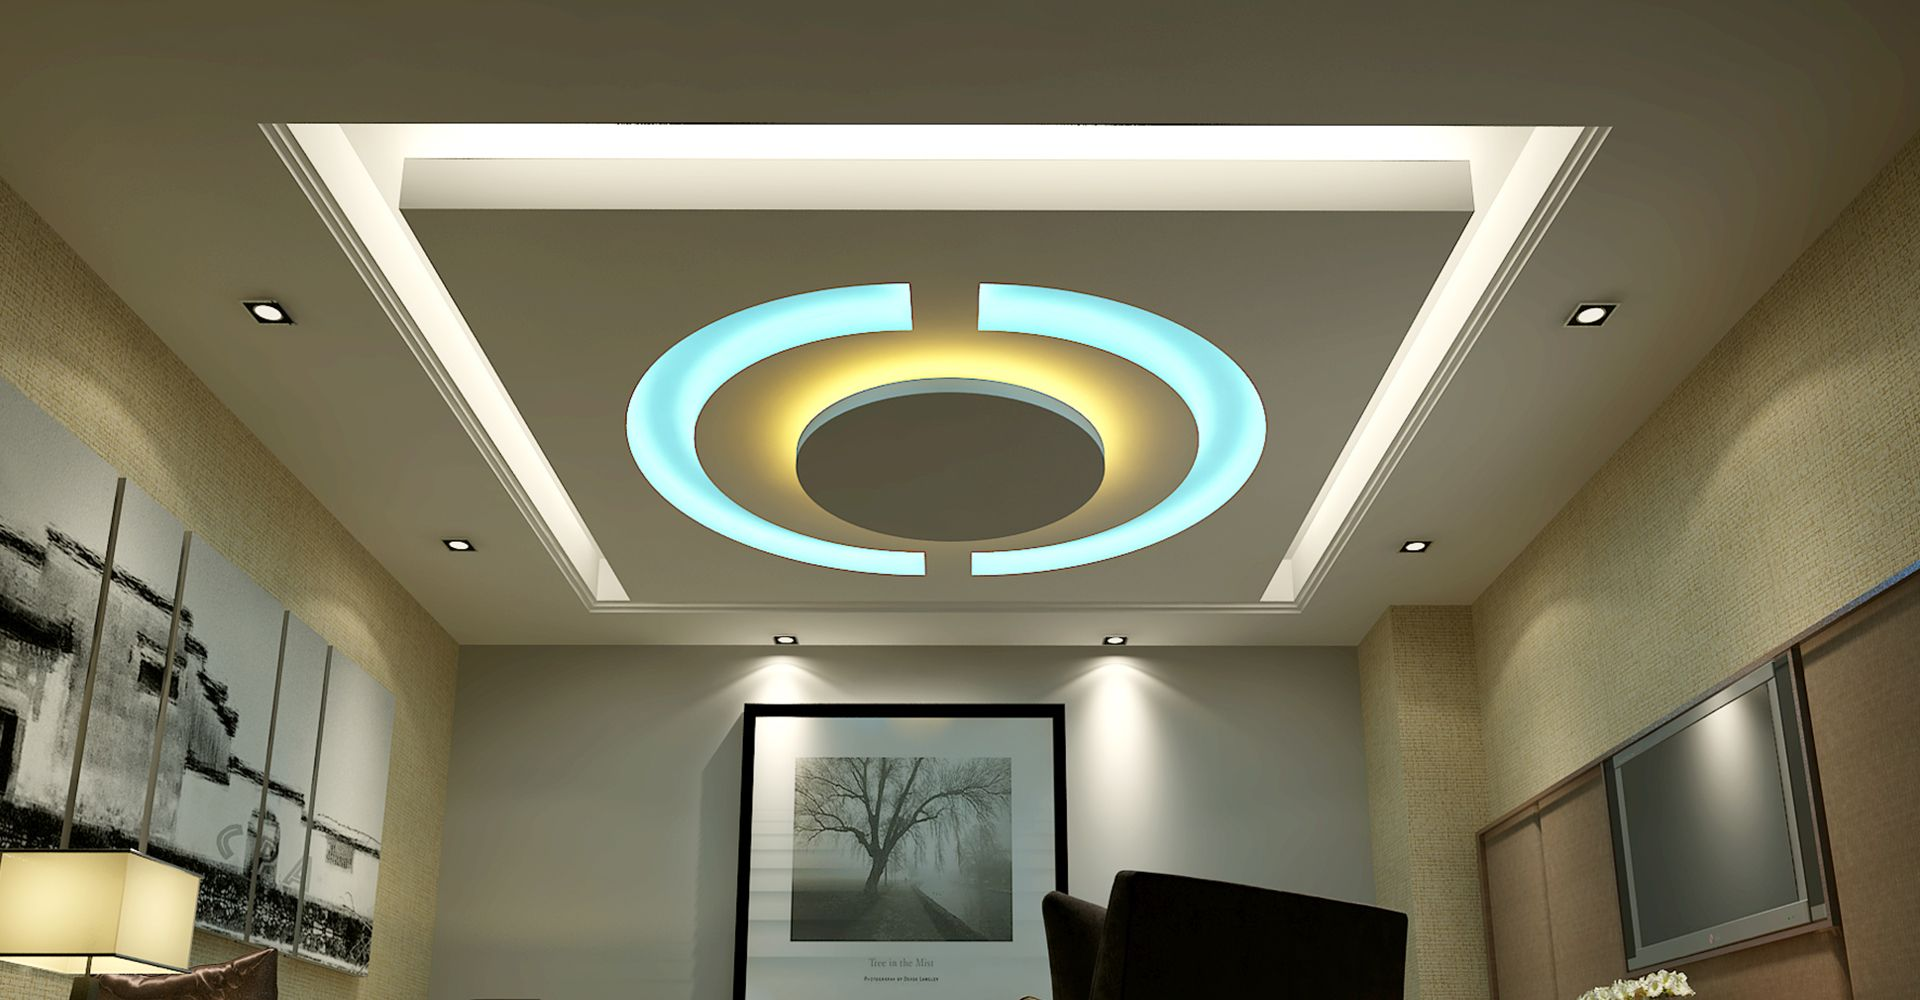 Ceiling Design For Small Room Ceilling Design Startpage By Ixquick Picture Search